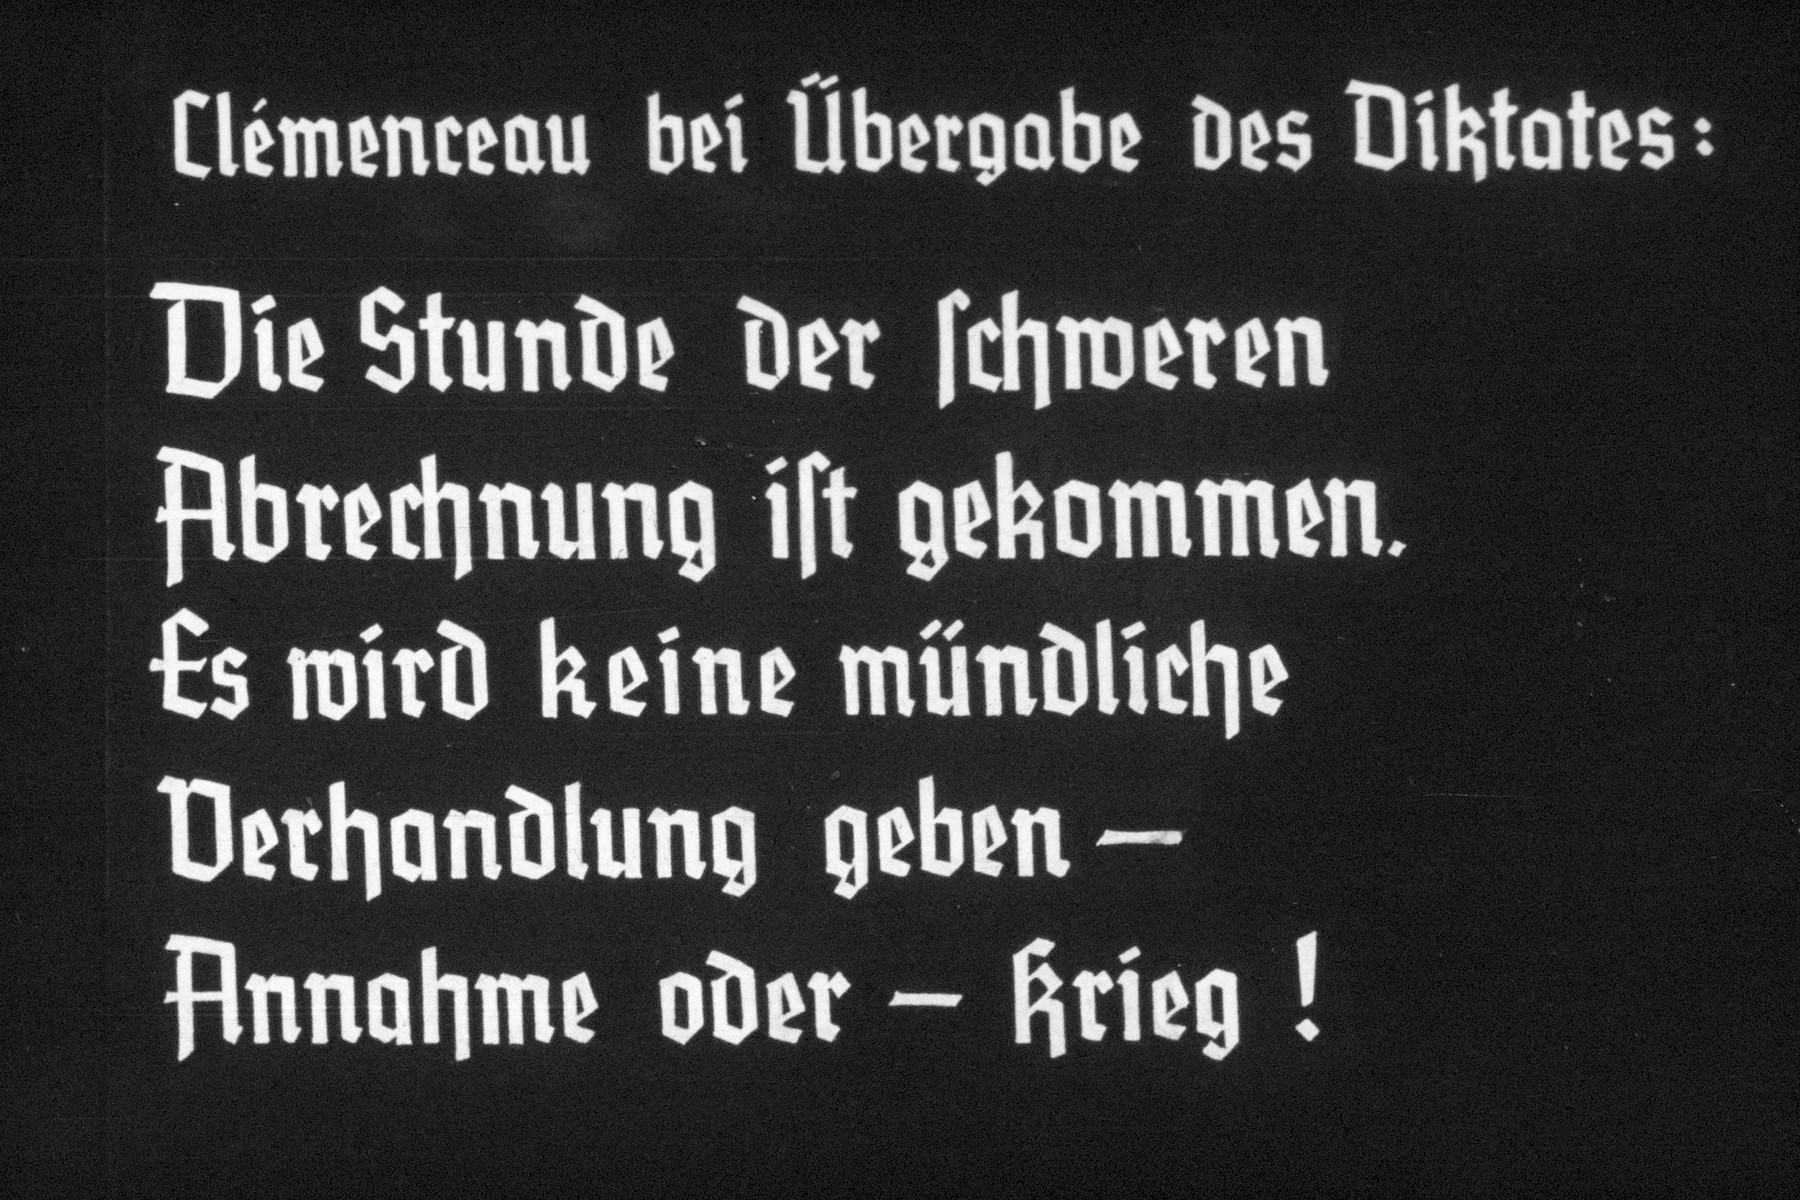 """34th slide from a Hitler Youth slideshow about the aftermath of WWI, Versailles, how it was overcome and the rise of Nazism.  Clemenceau bei ü bergabe des Diktates: Die Stunde der Schweren Abrechnung ist gekommen. Es wird keine mundliche Verhandlung geben--Annahme oder--krieg! // Clemenceau opening at the dictation:  """"The hour of reckoning has come heavy. There will be no oral hearing - acceptance or - war!"""""""